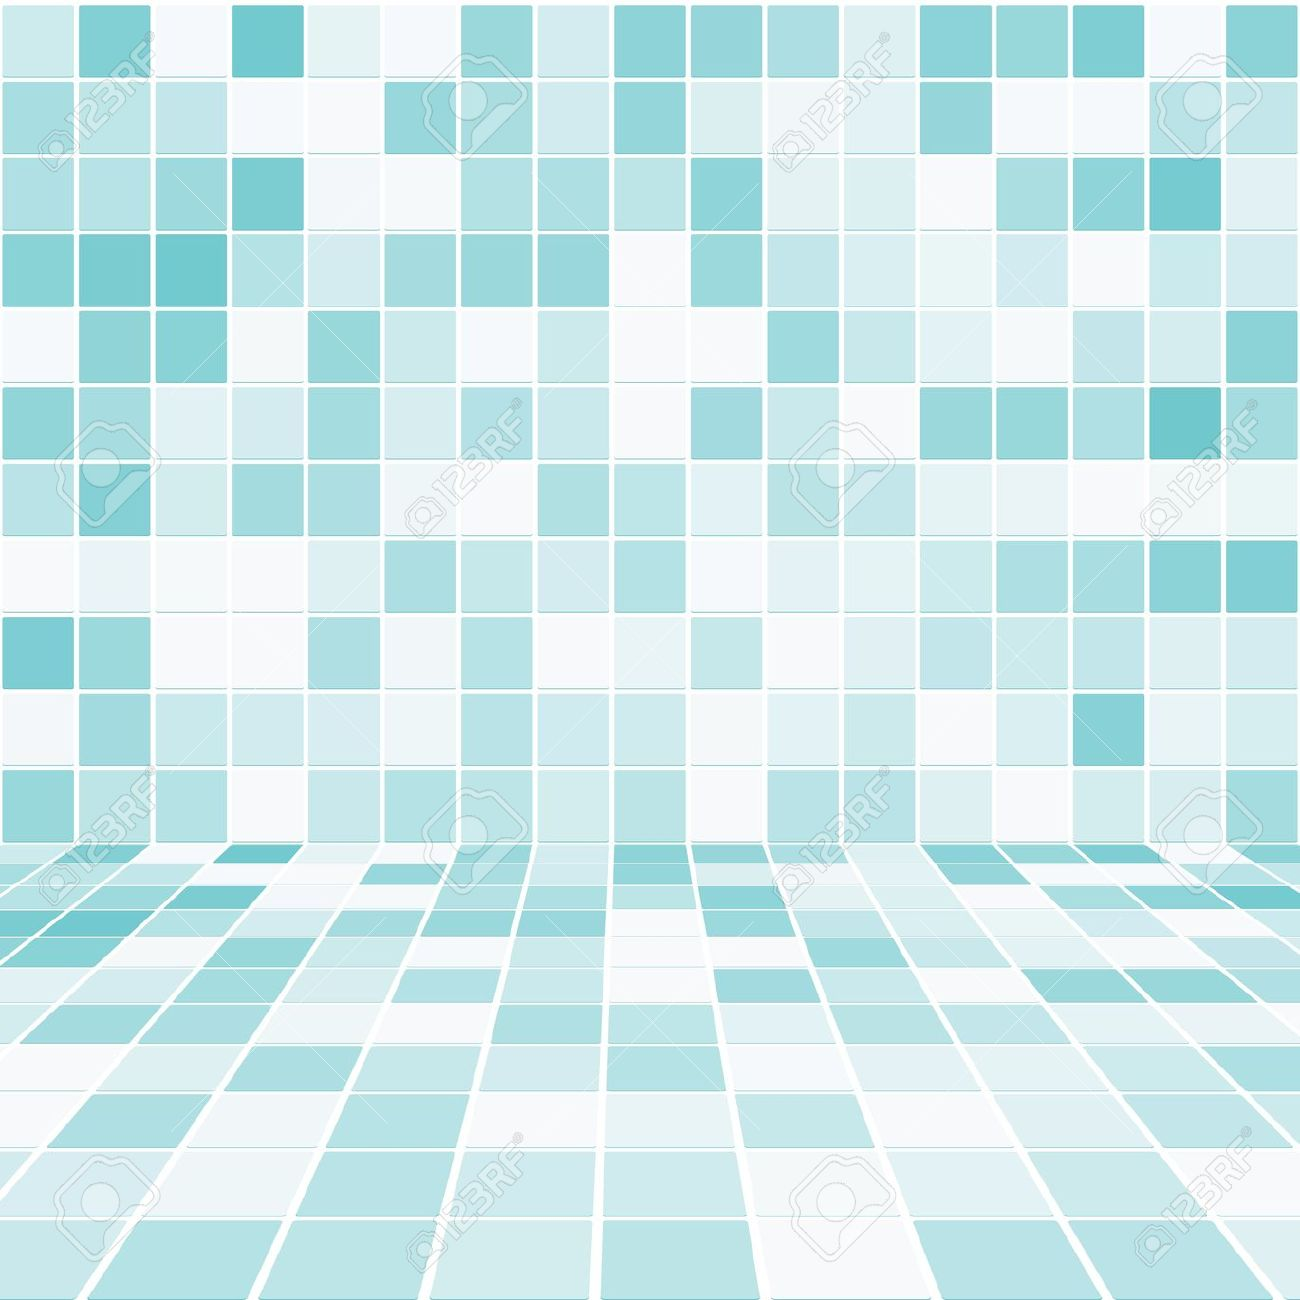 Tiles clipart Download Clip Free Art Free